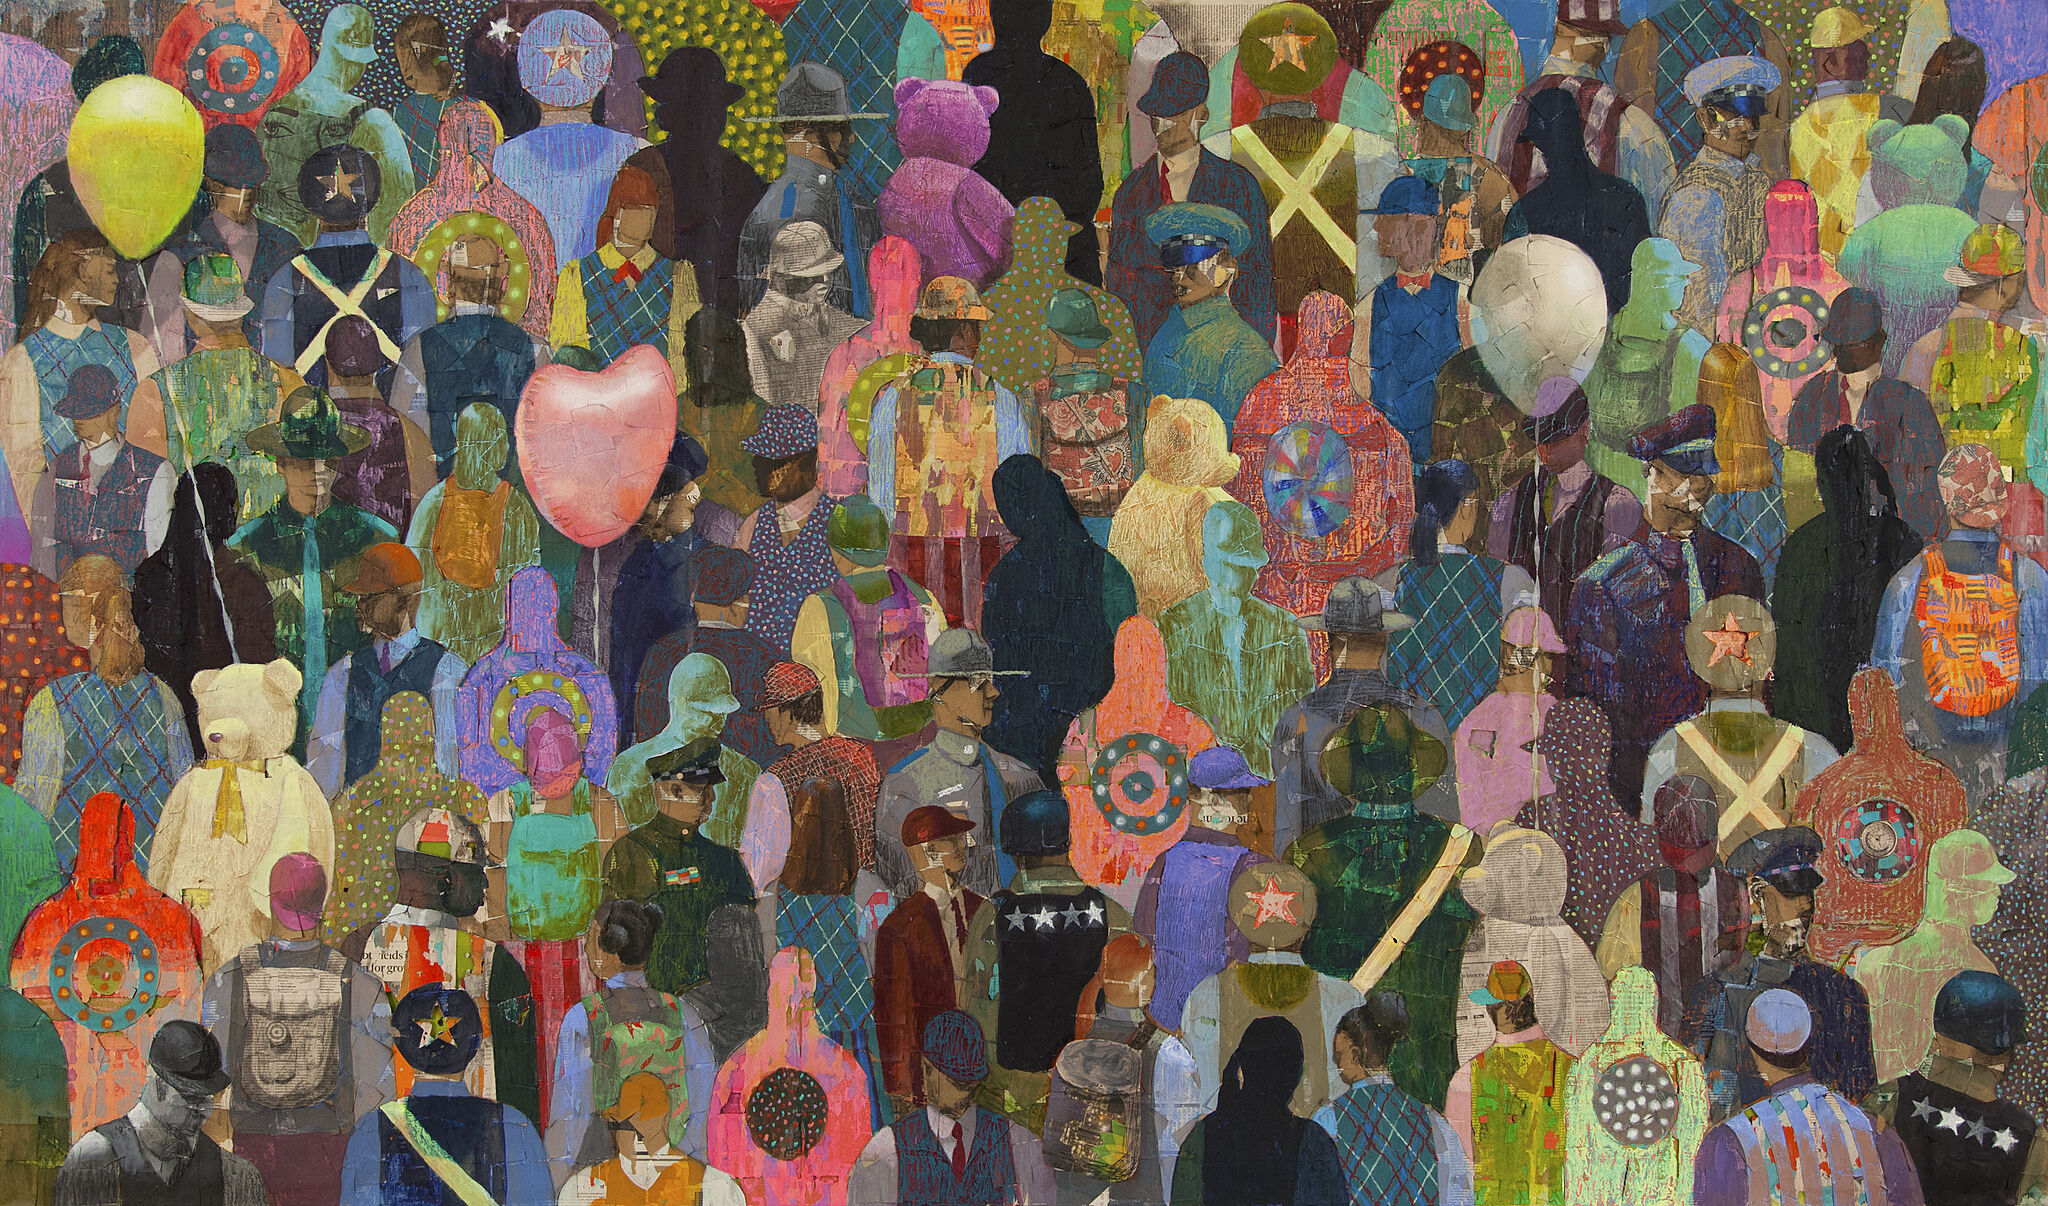 Stylized and colorful crowd of people, some holding balloons.